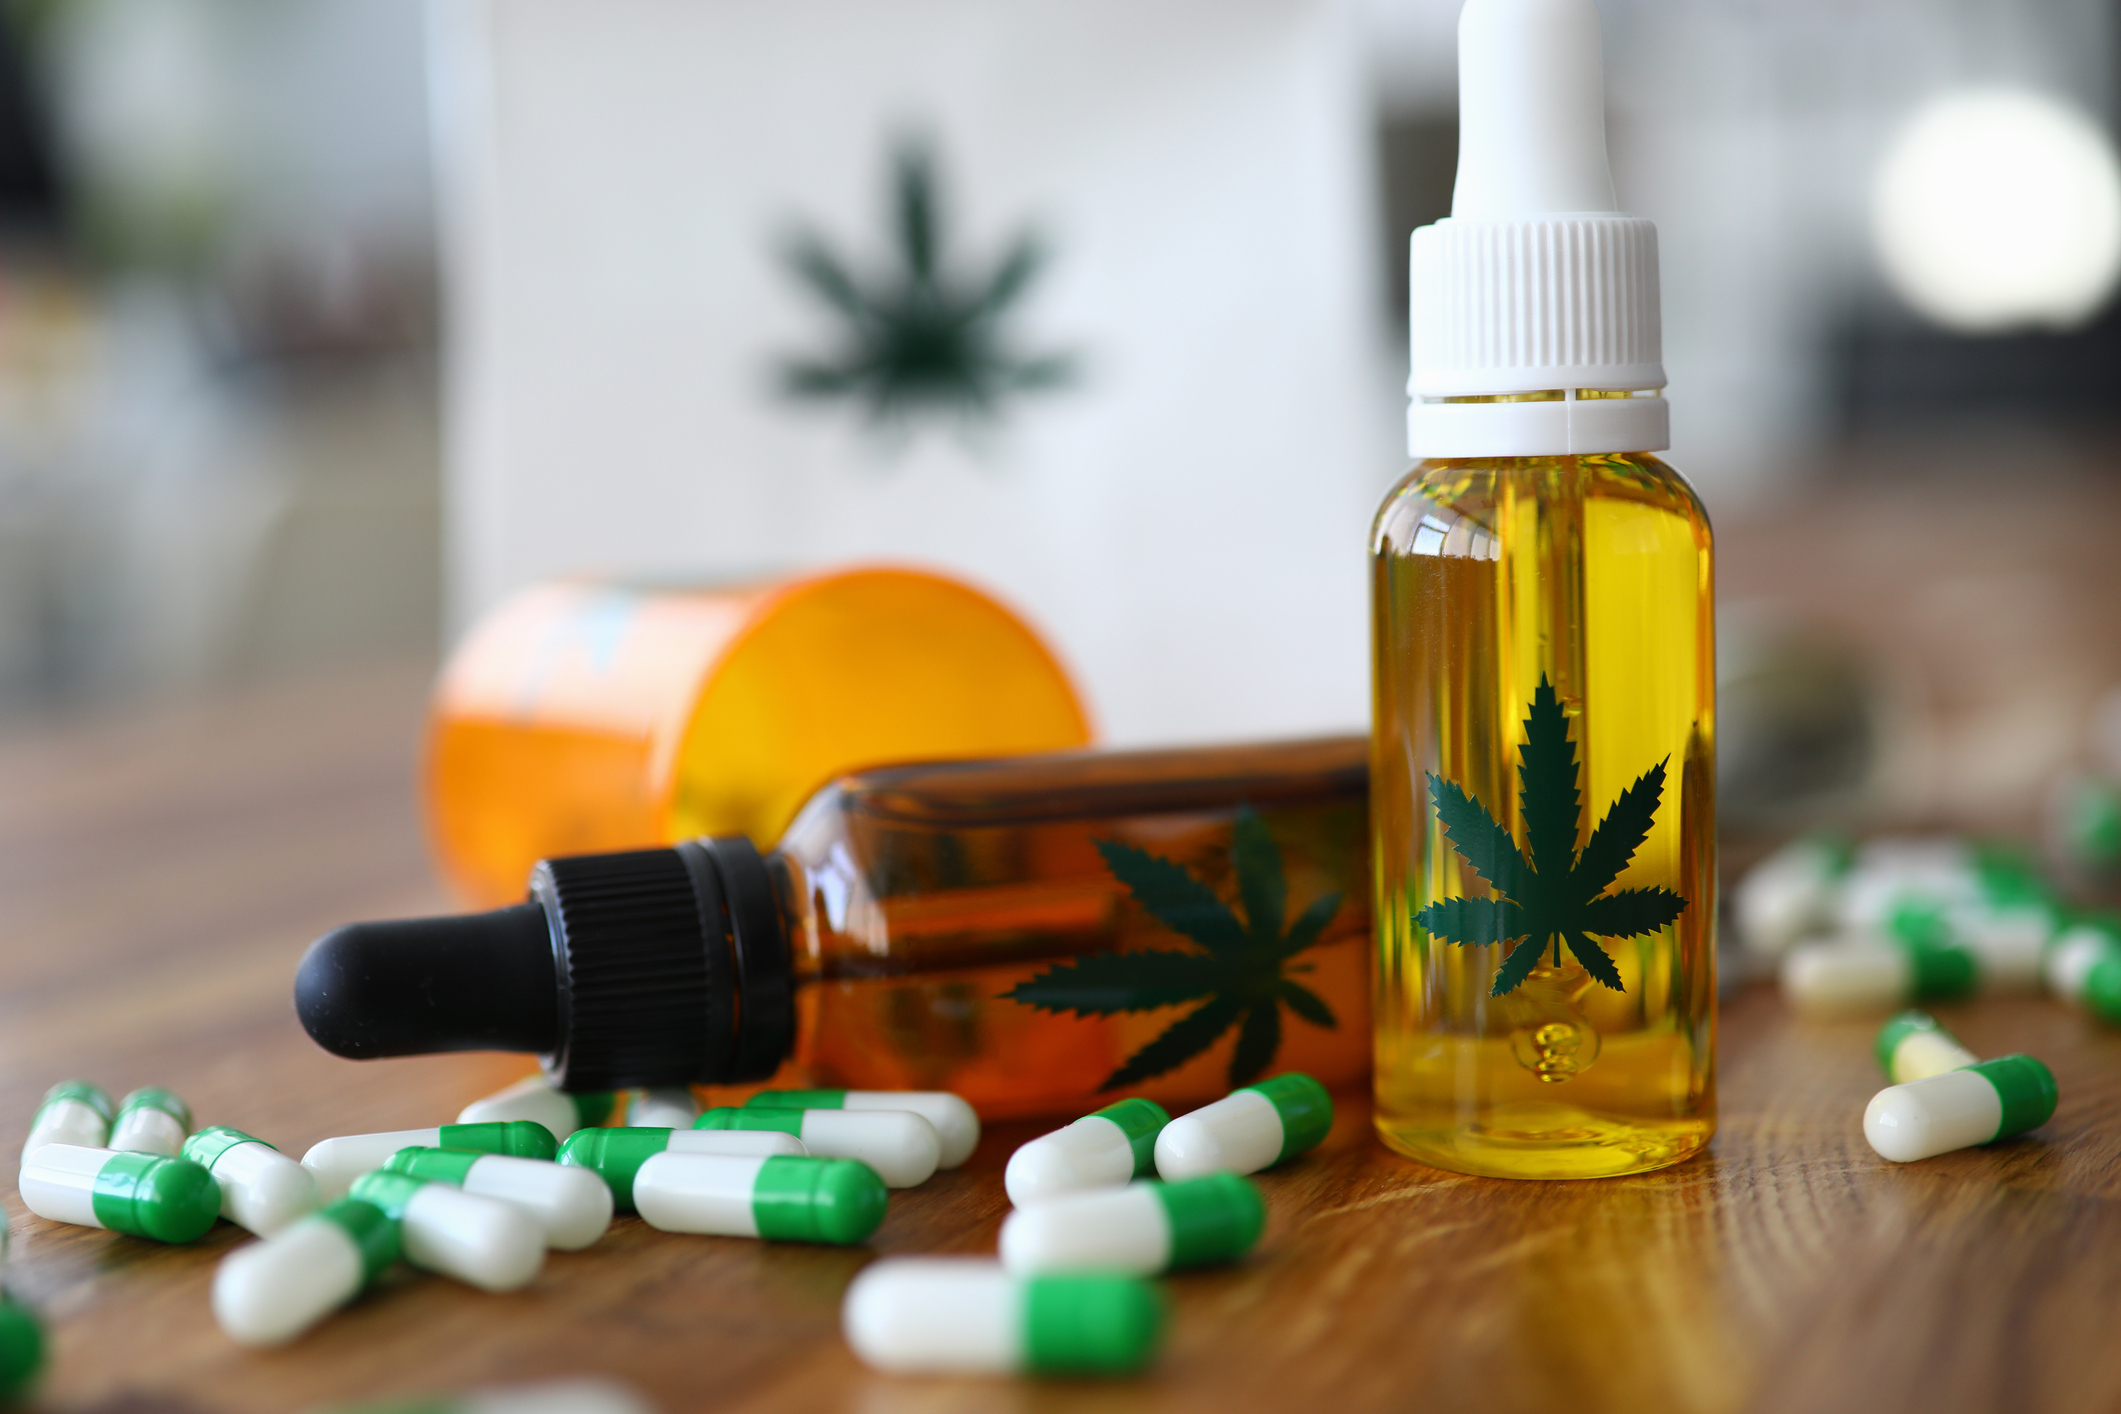 CBD and other medications: Proceed with caution